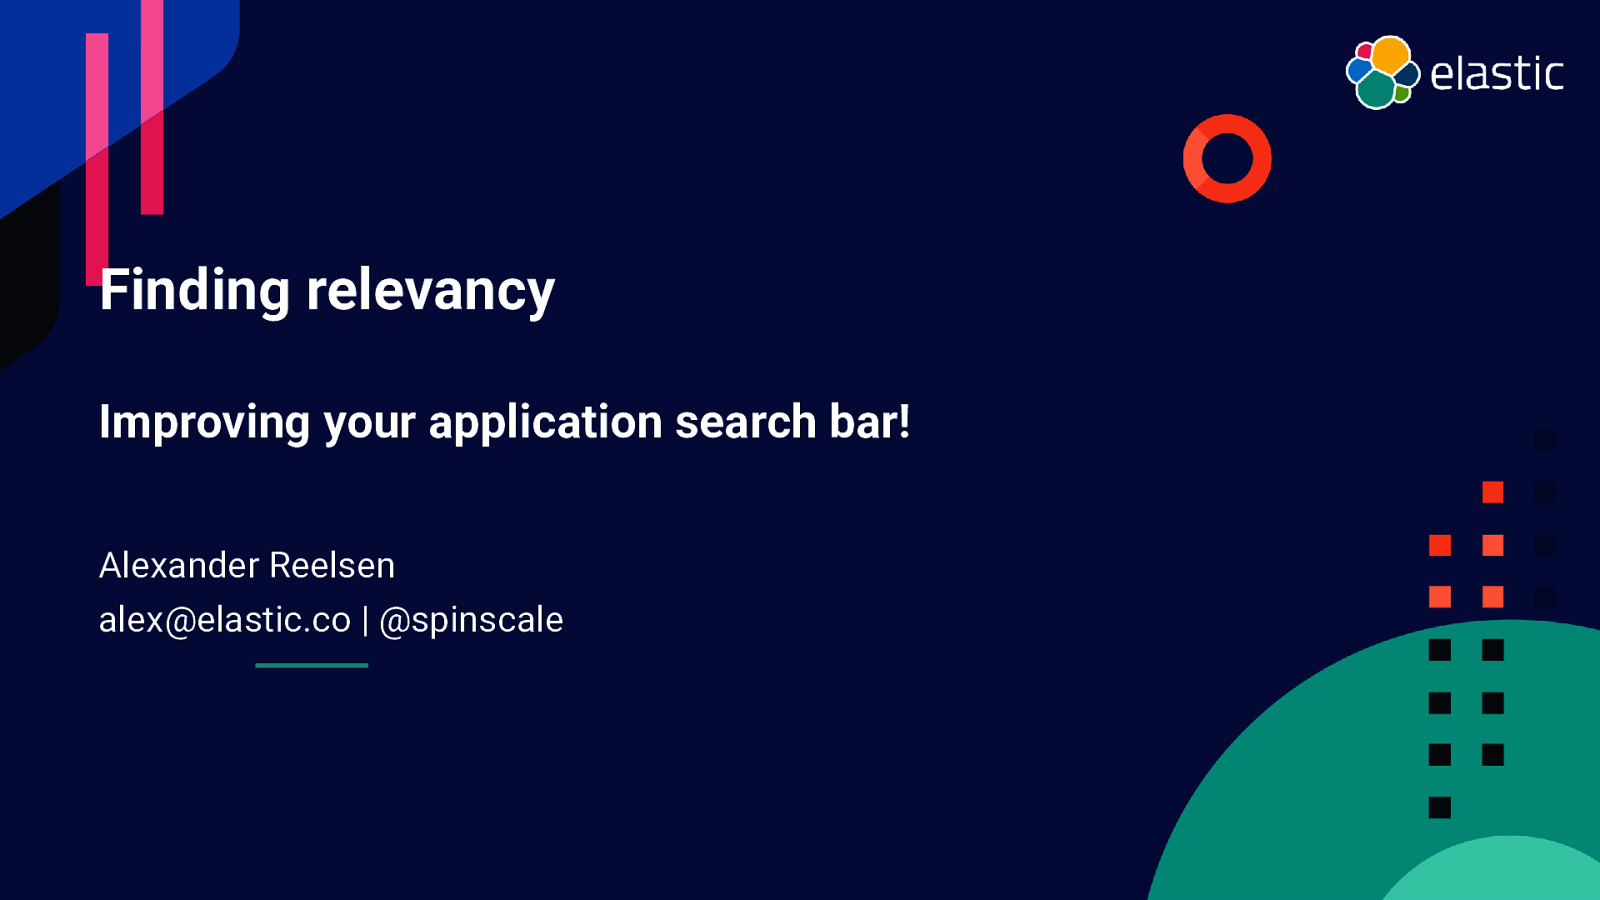 Finding relevancy: Improving your application search bar!